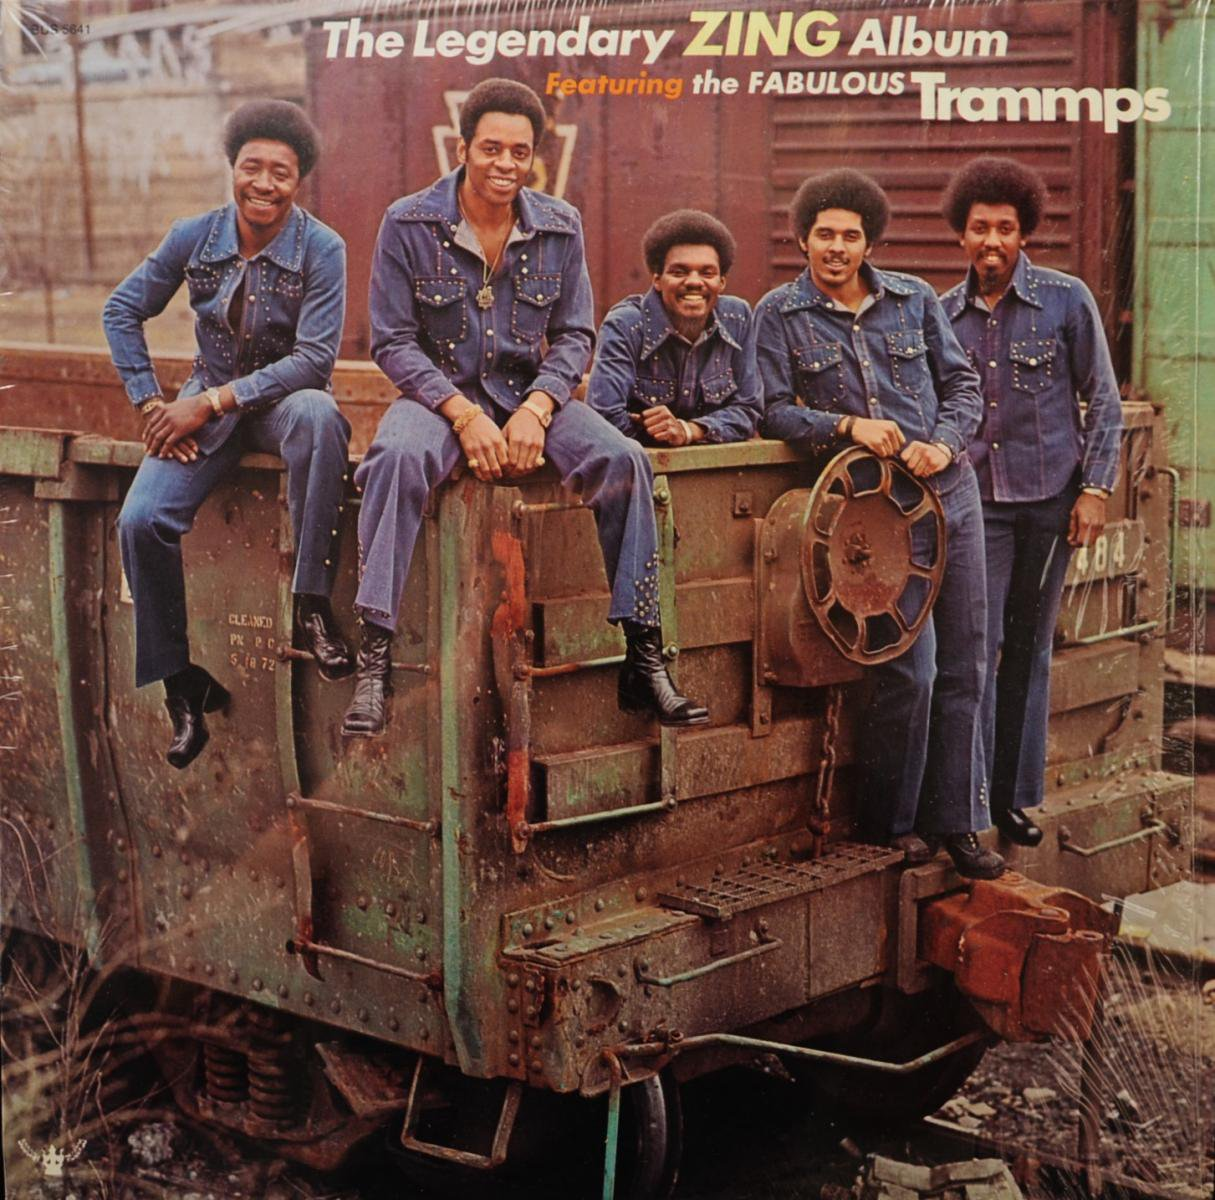 Trammps The Legendary Zing Album